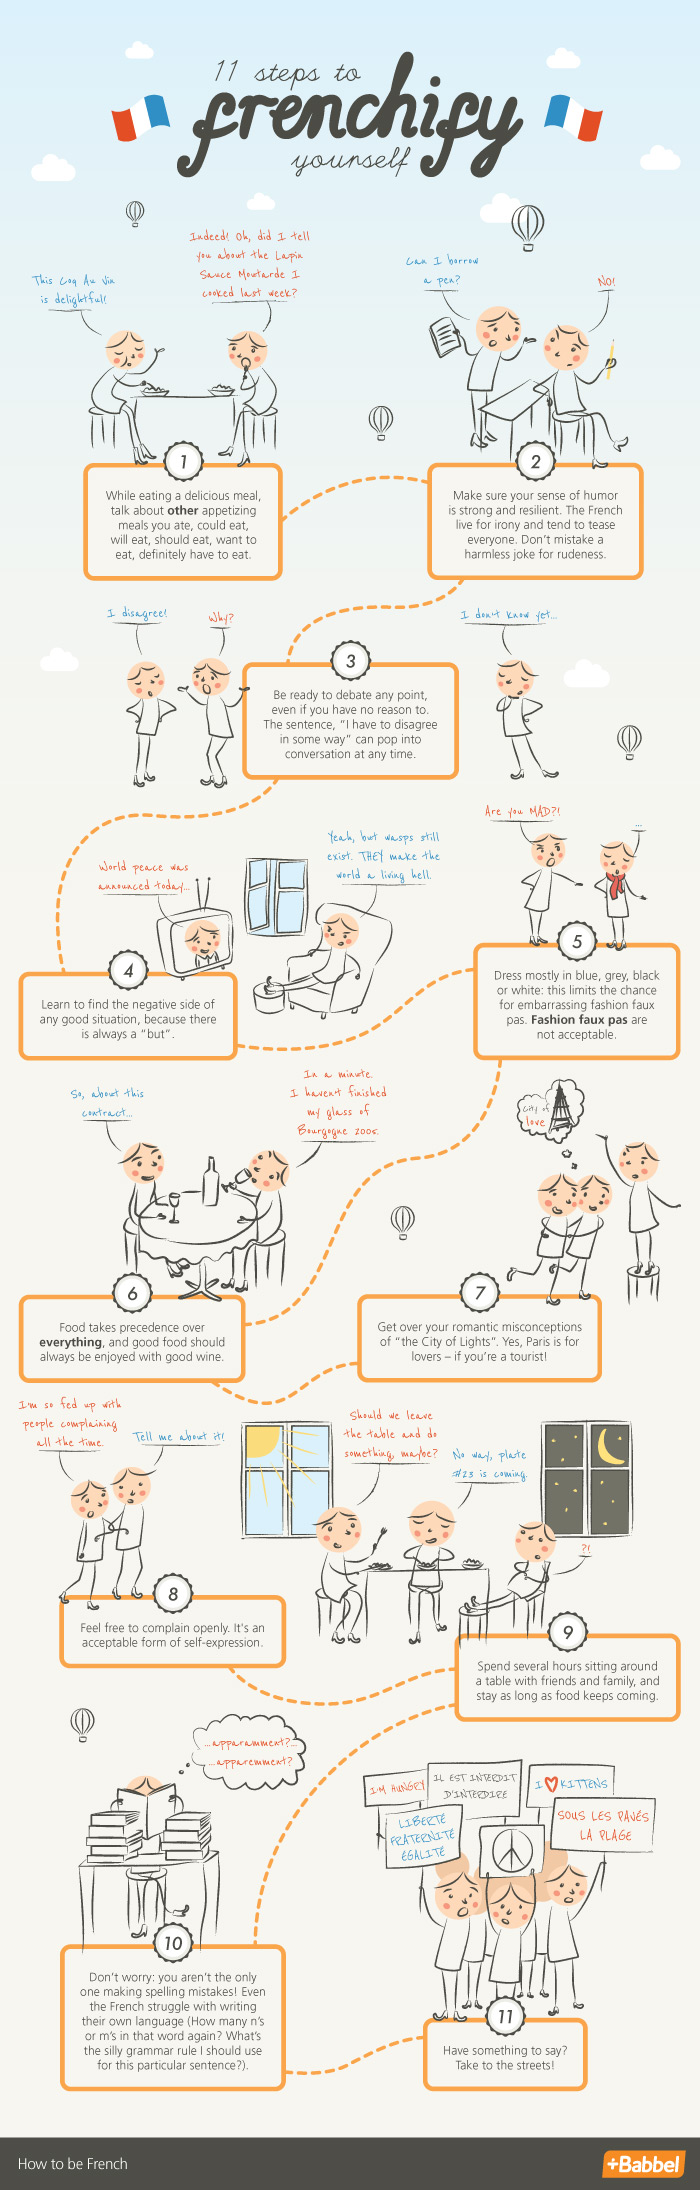 11 Steps To Frenchify Yourself